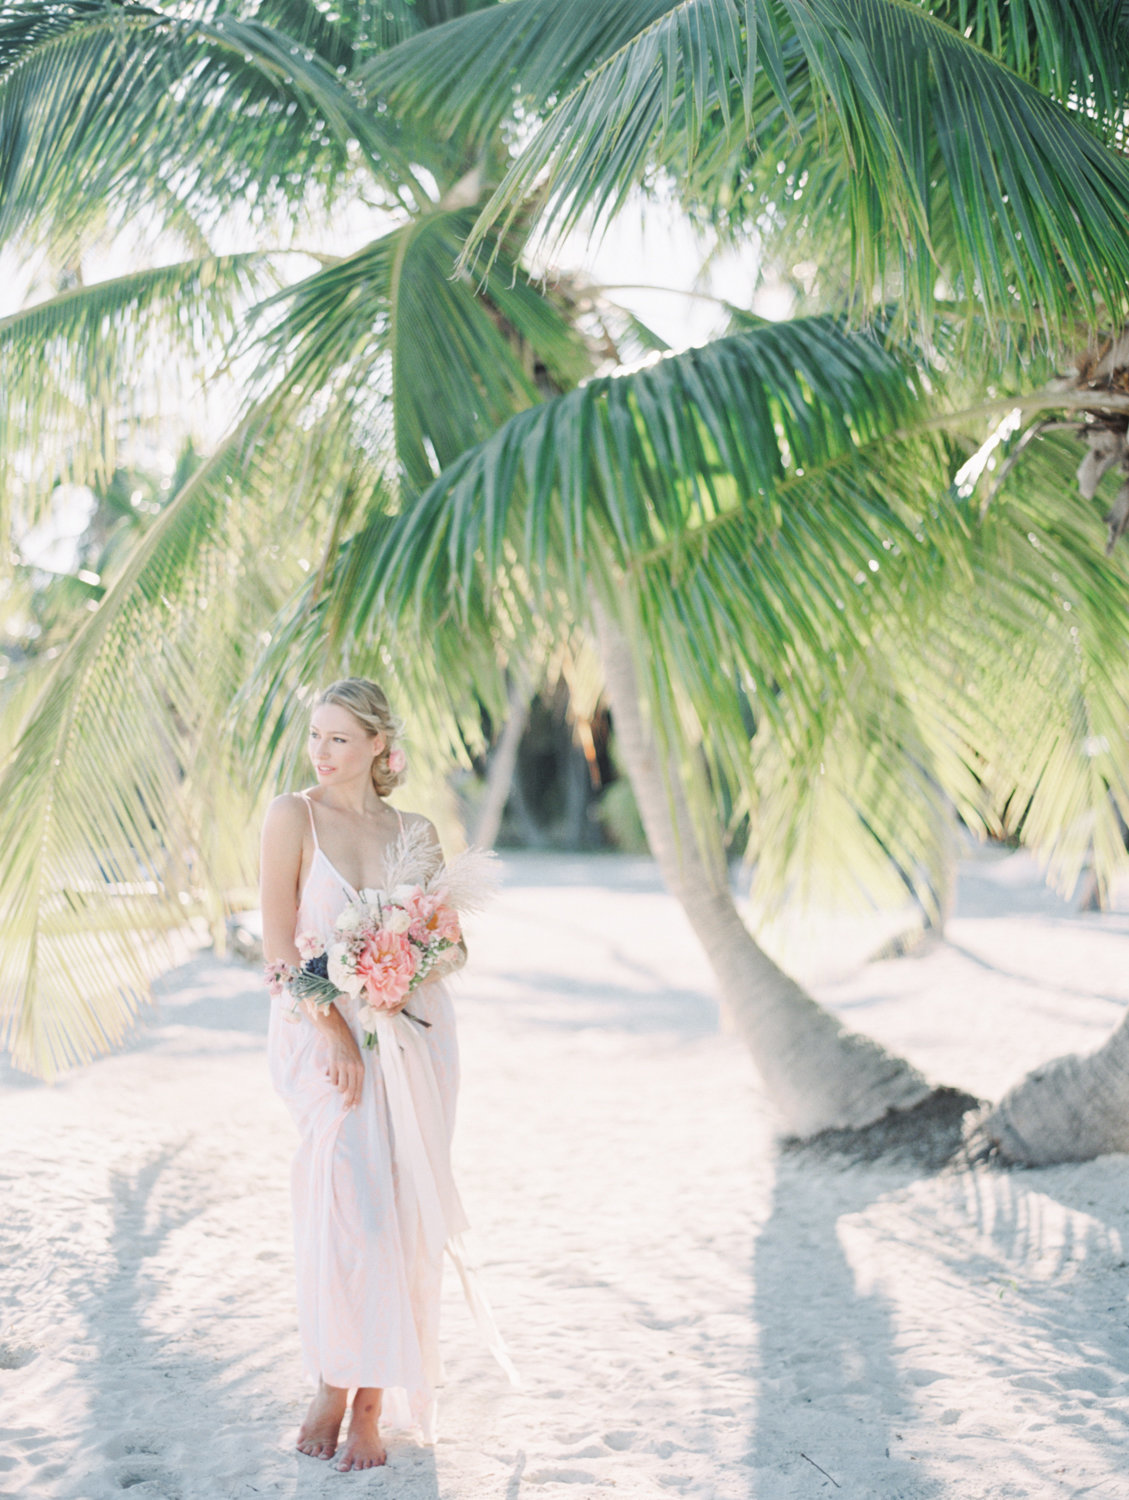 island-elopement-destination-wedding-photographer-melanie-gabrielle-photography-0105